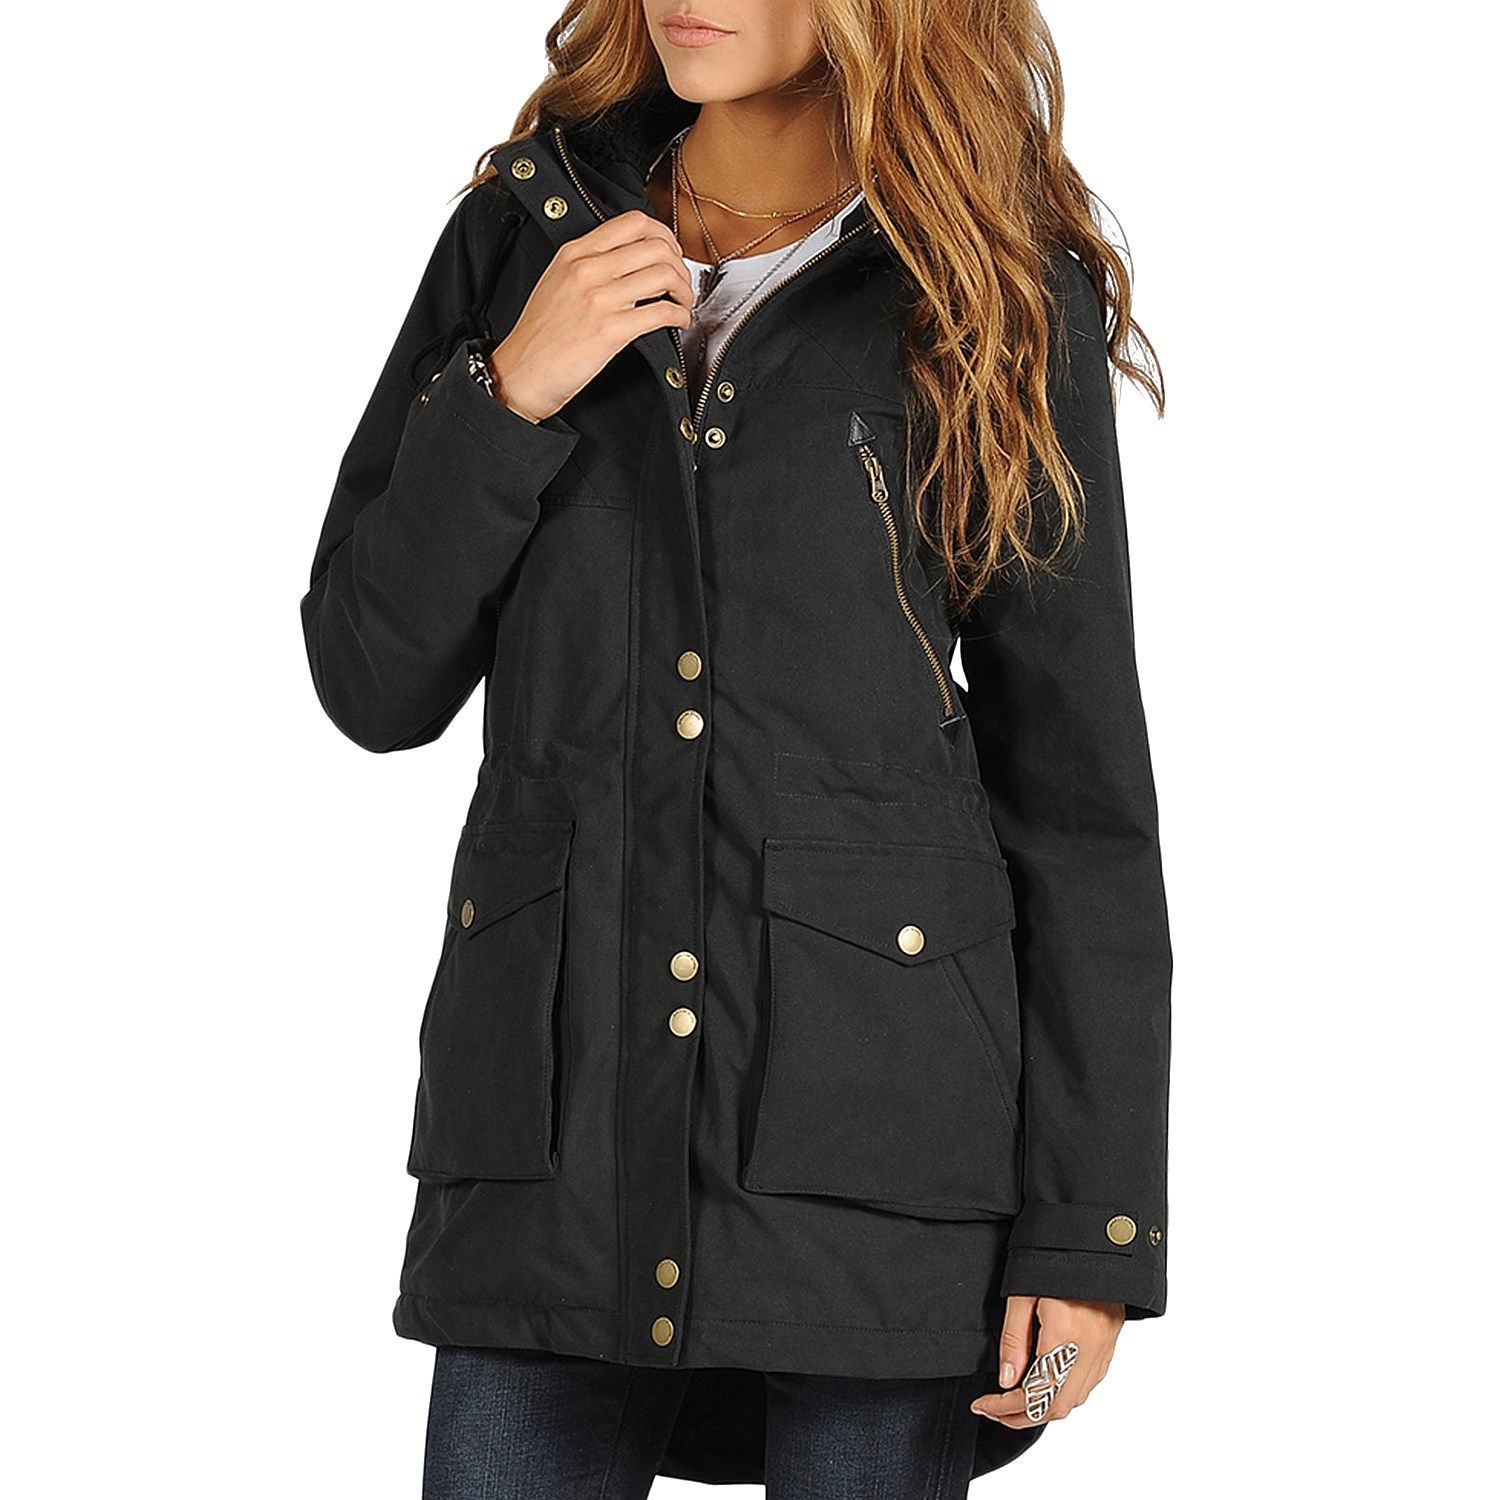 Volcom Walk On By Parka Jacket - Women's | I WANT | Pinterest ...